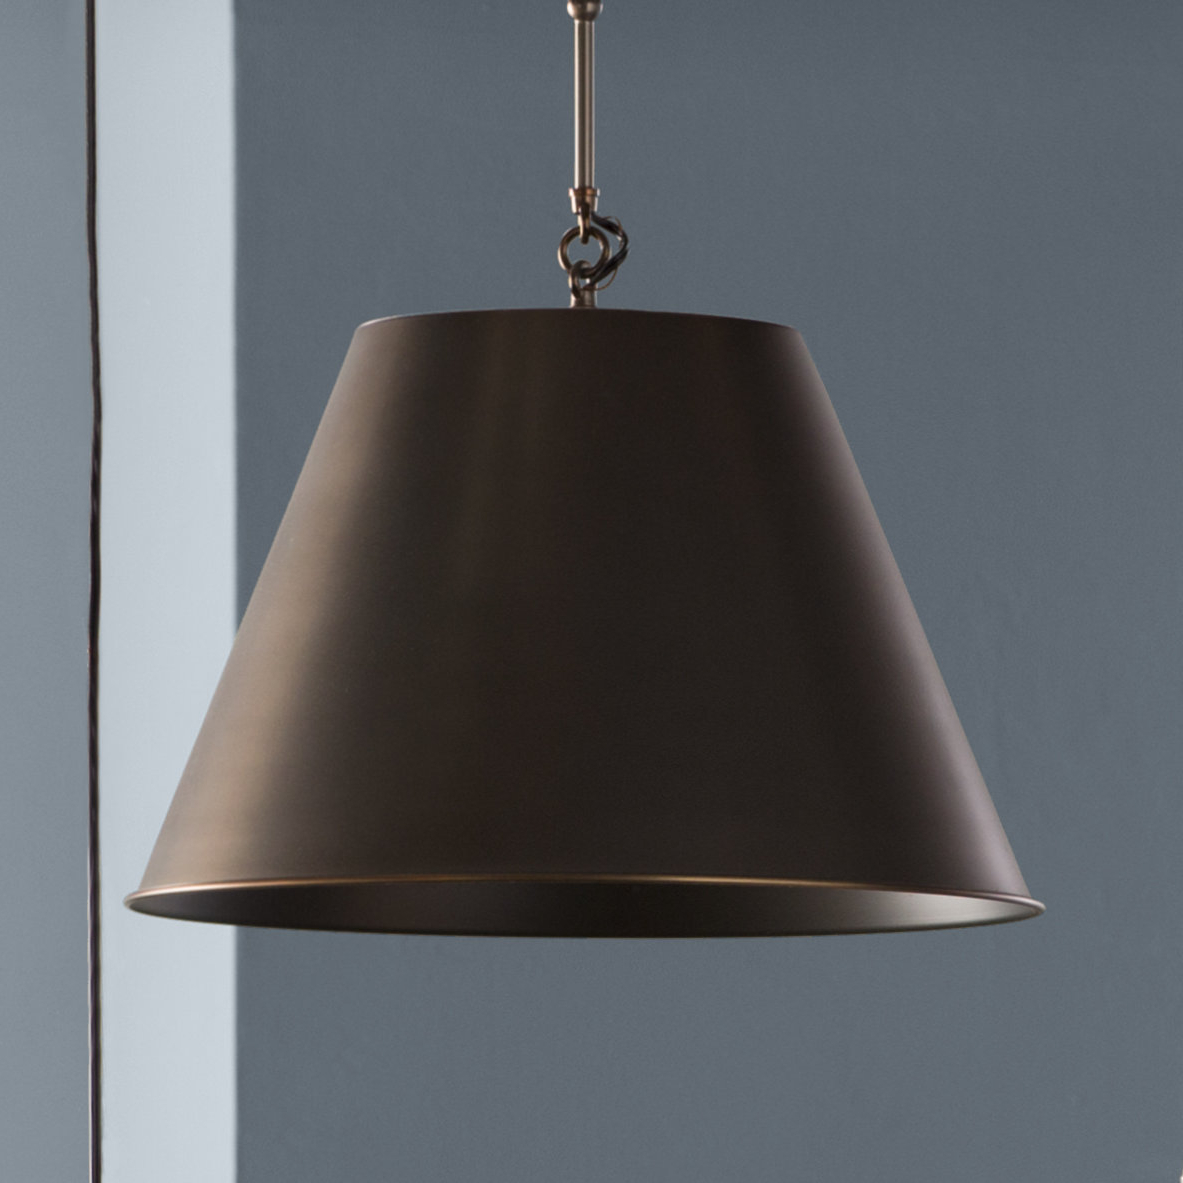 Best And Newest Nadeau 1 Light Single Cone Pendants With Regard To Nadeau 1 Light Single Cone Pendant (Gallery 4 of 20)